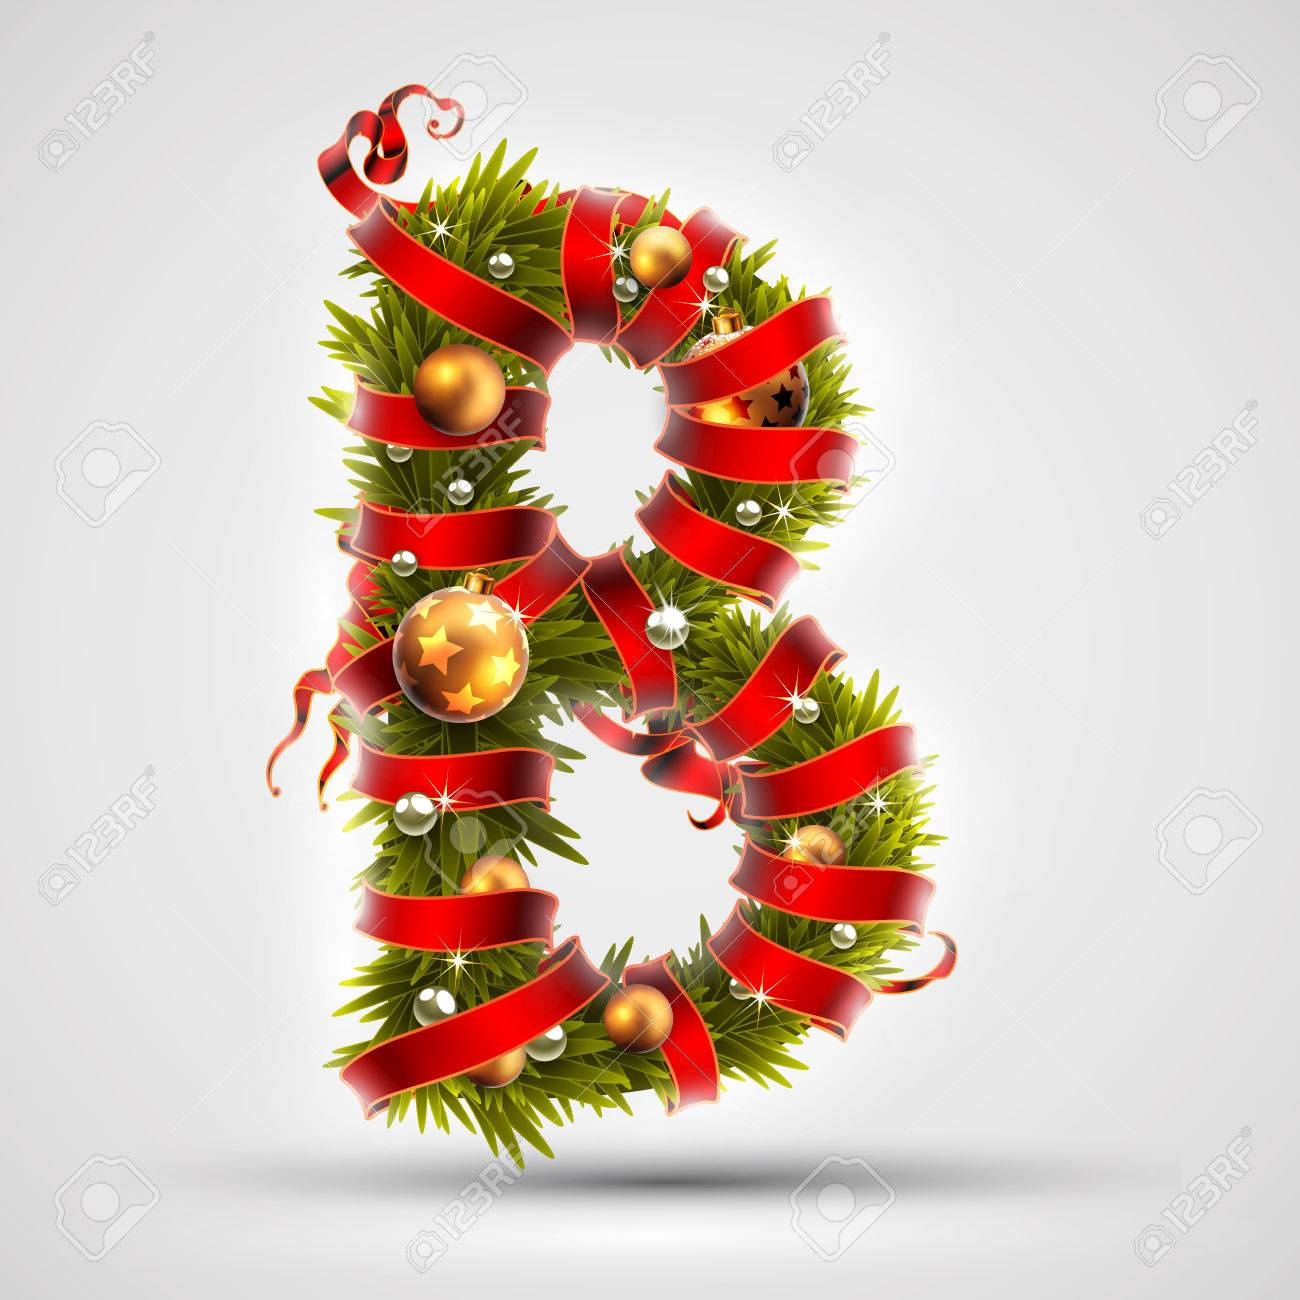 Christmas Font Letter B Of Christmas Tree Branches Decorated